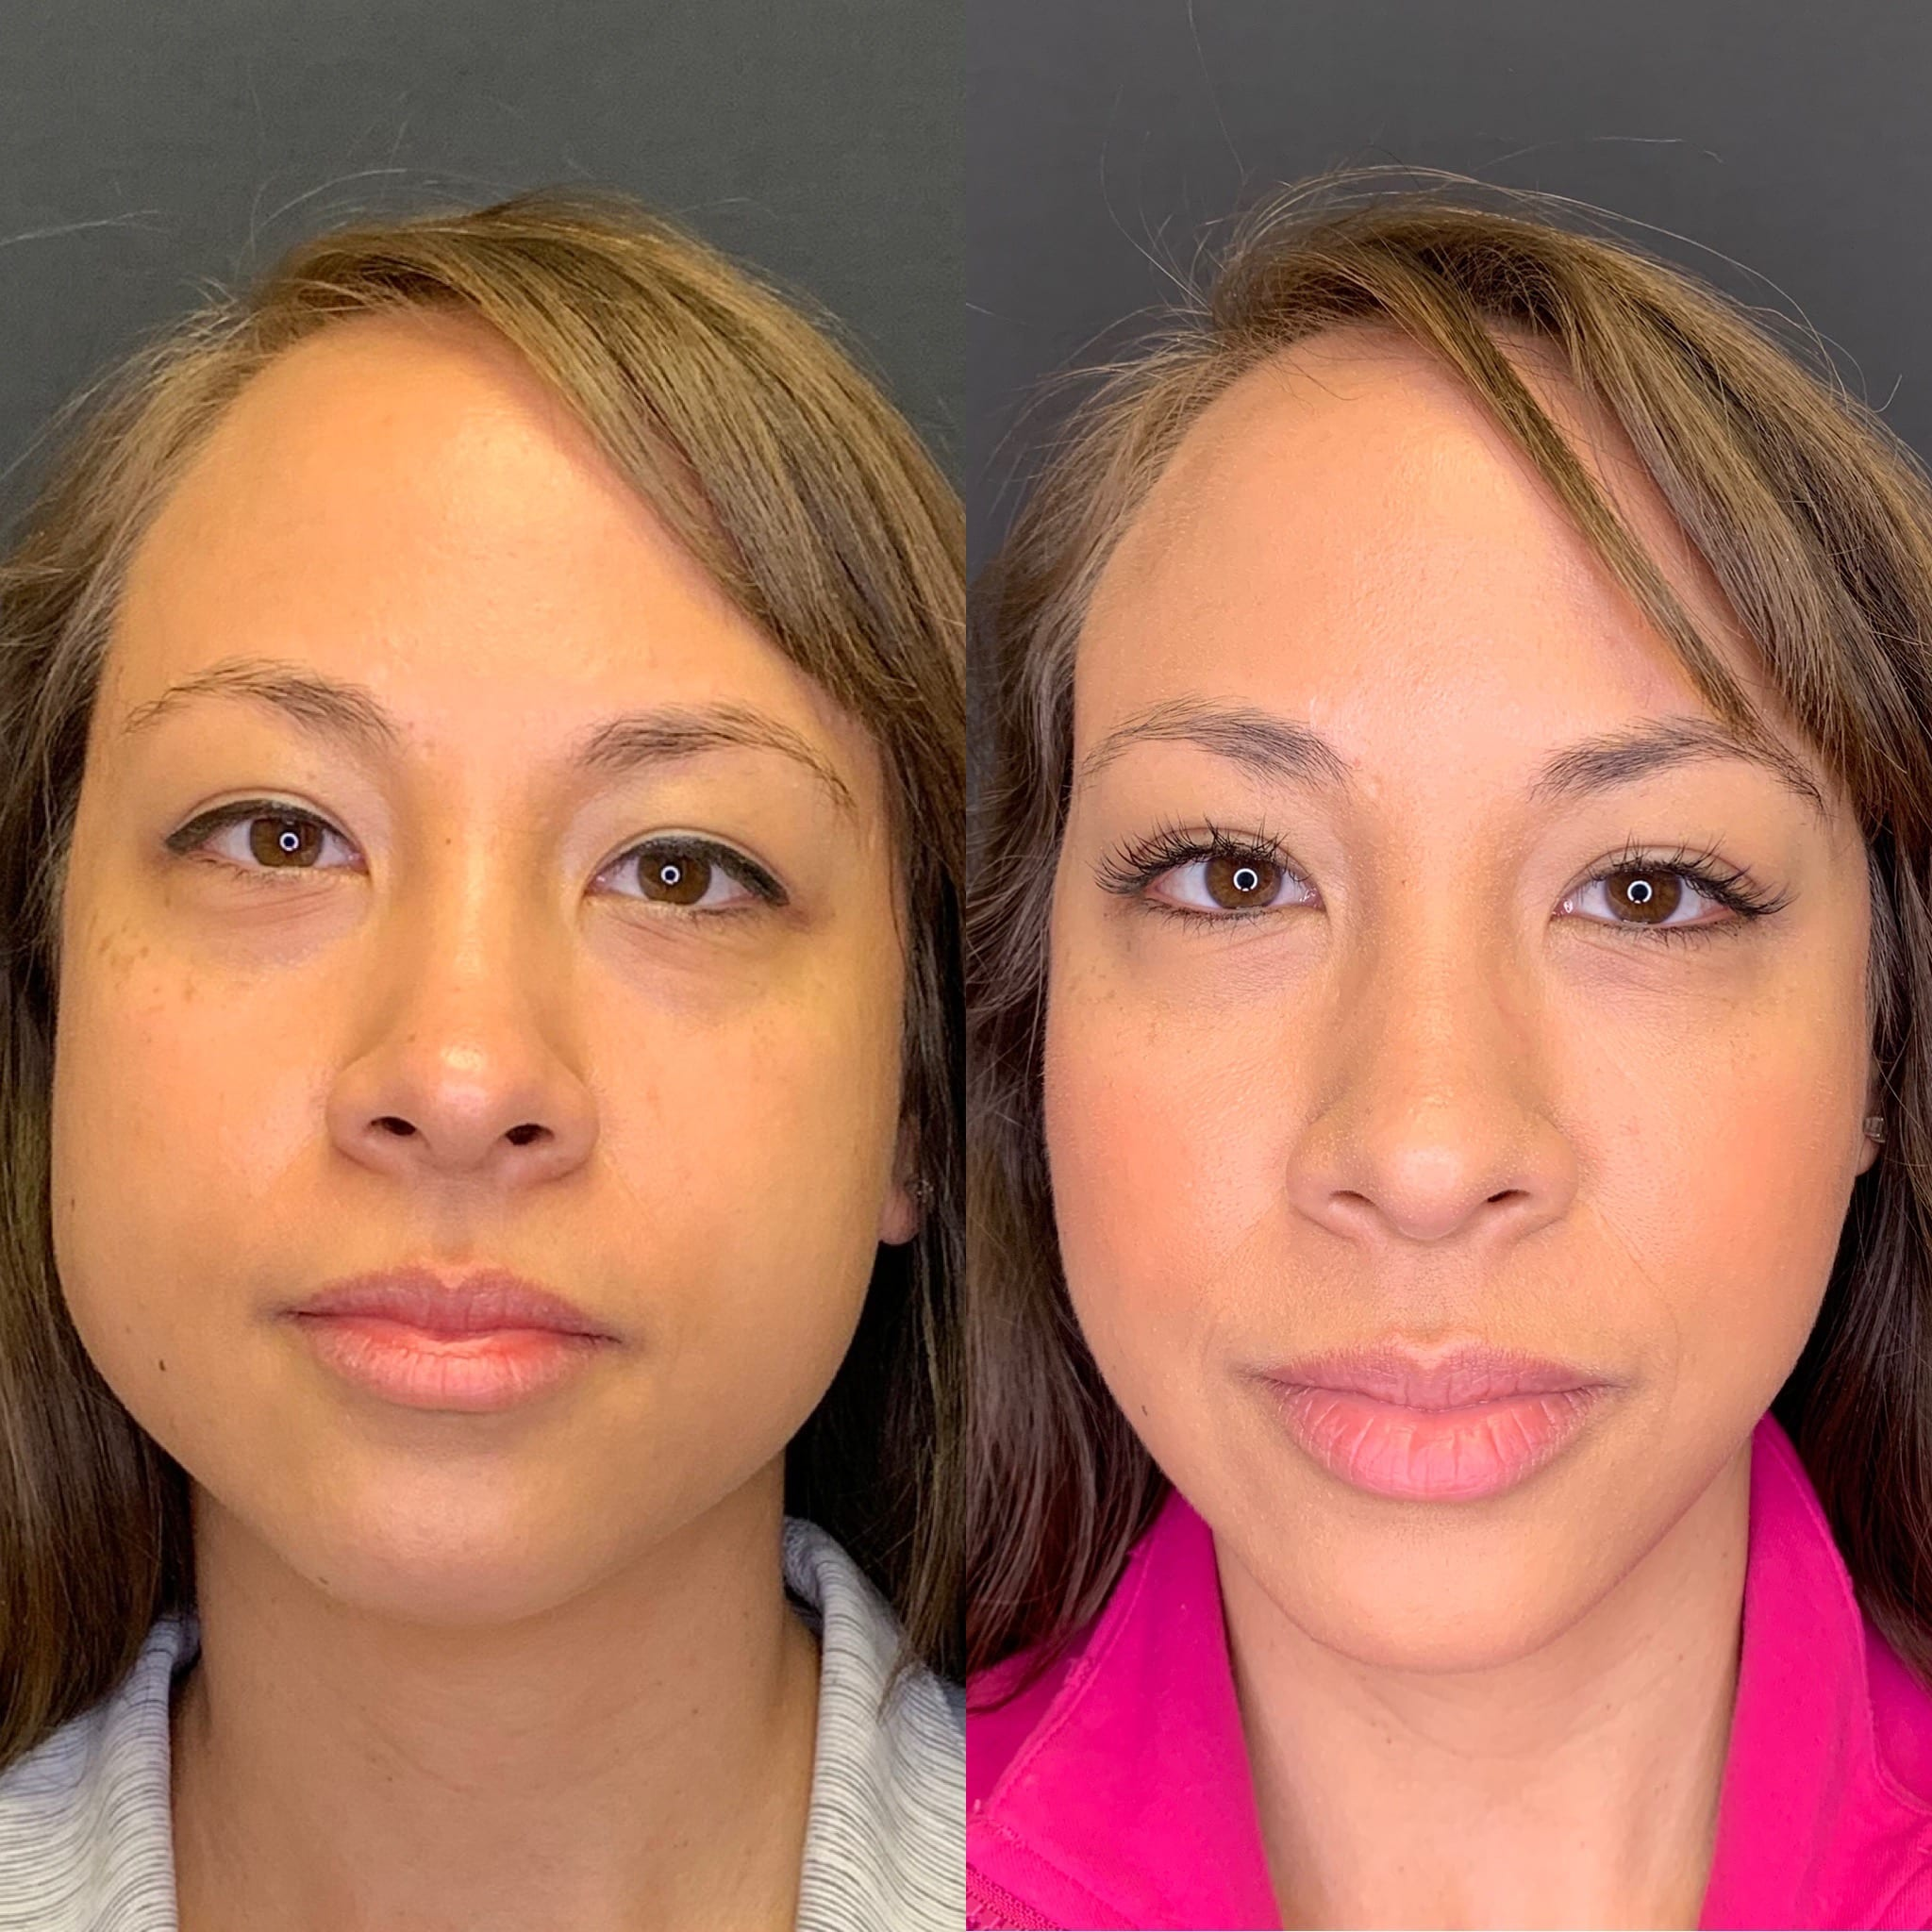 31 y/o Asian F 3 months after receiving 30 units of botox to her right masseter and 20 units to her left for jawline slimming.